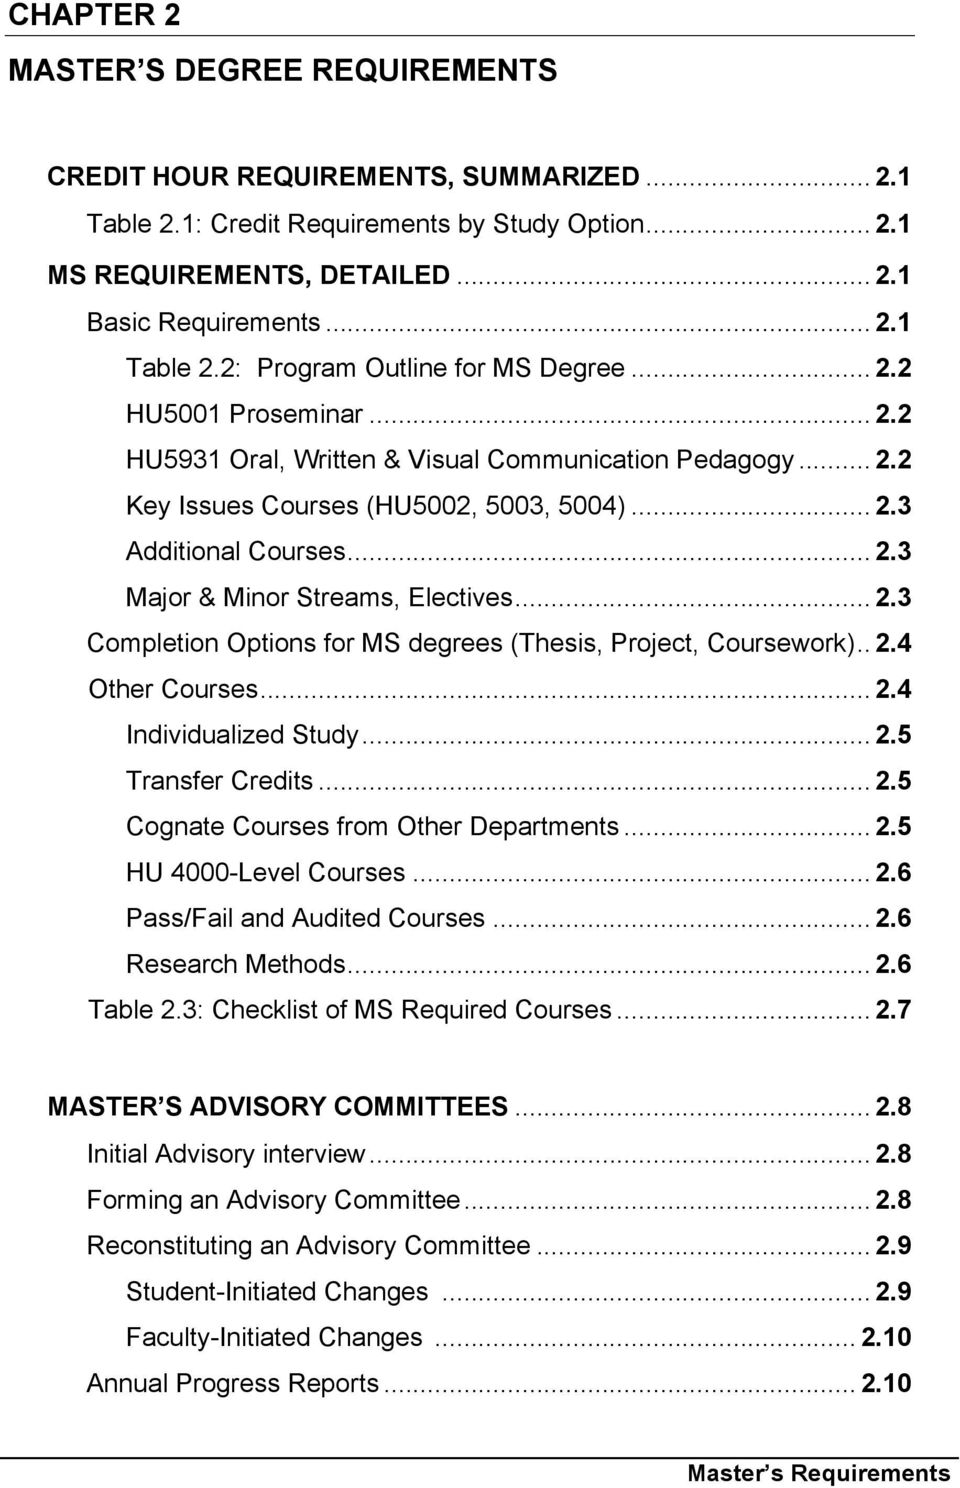 .. 2.3 Completion Options for MS degrees (Thesis, Project, Coursework).. 2.4 Other Courses... 2.4 Individualized Study... 2.5 Transfer Credits... 2.5 Cognate Courses from Other Departments... 2.5 HU 4000-Level Courses.